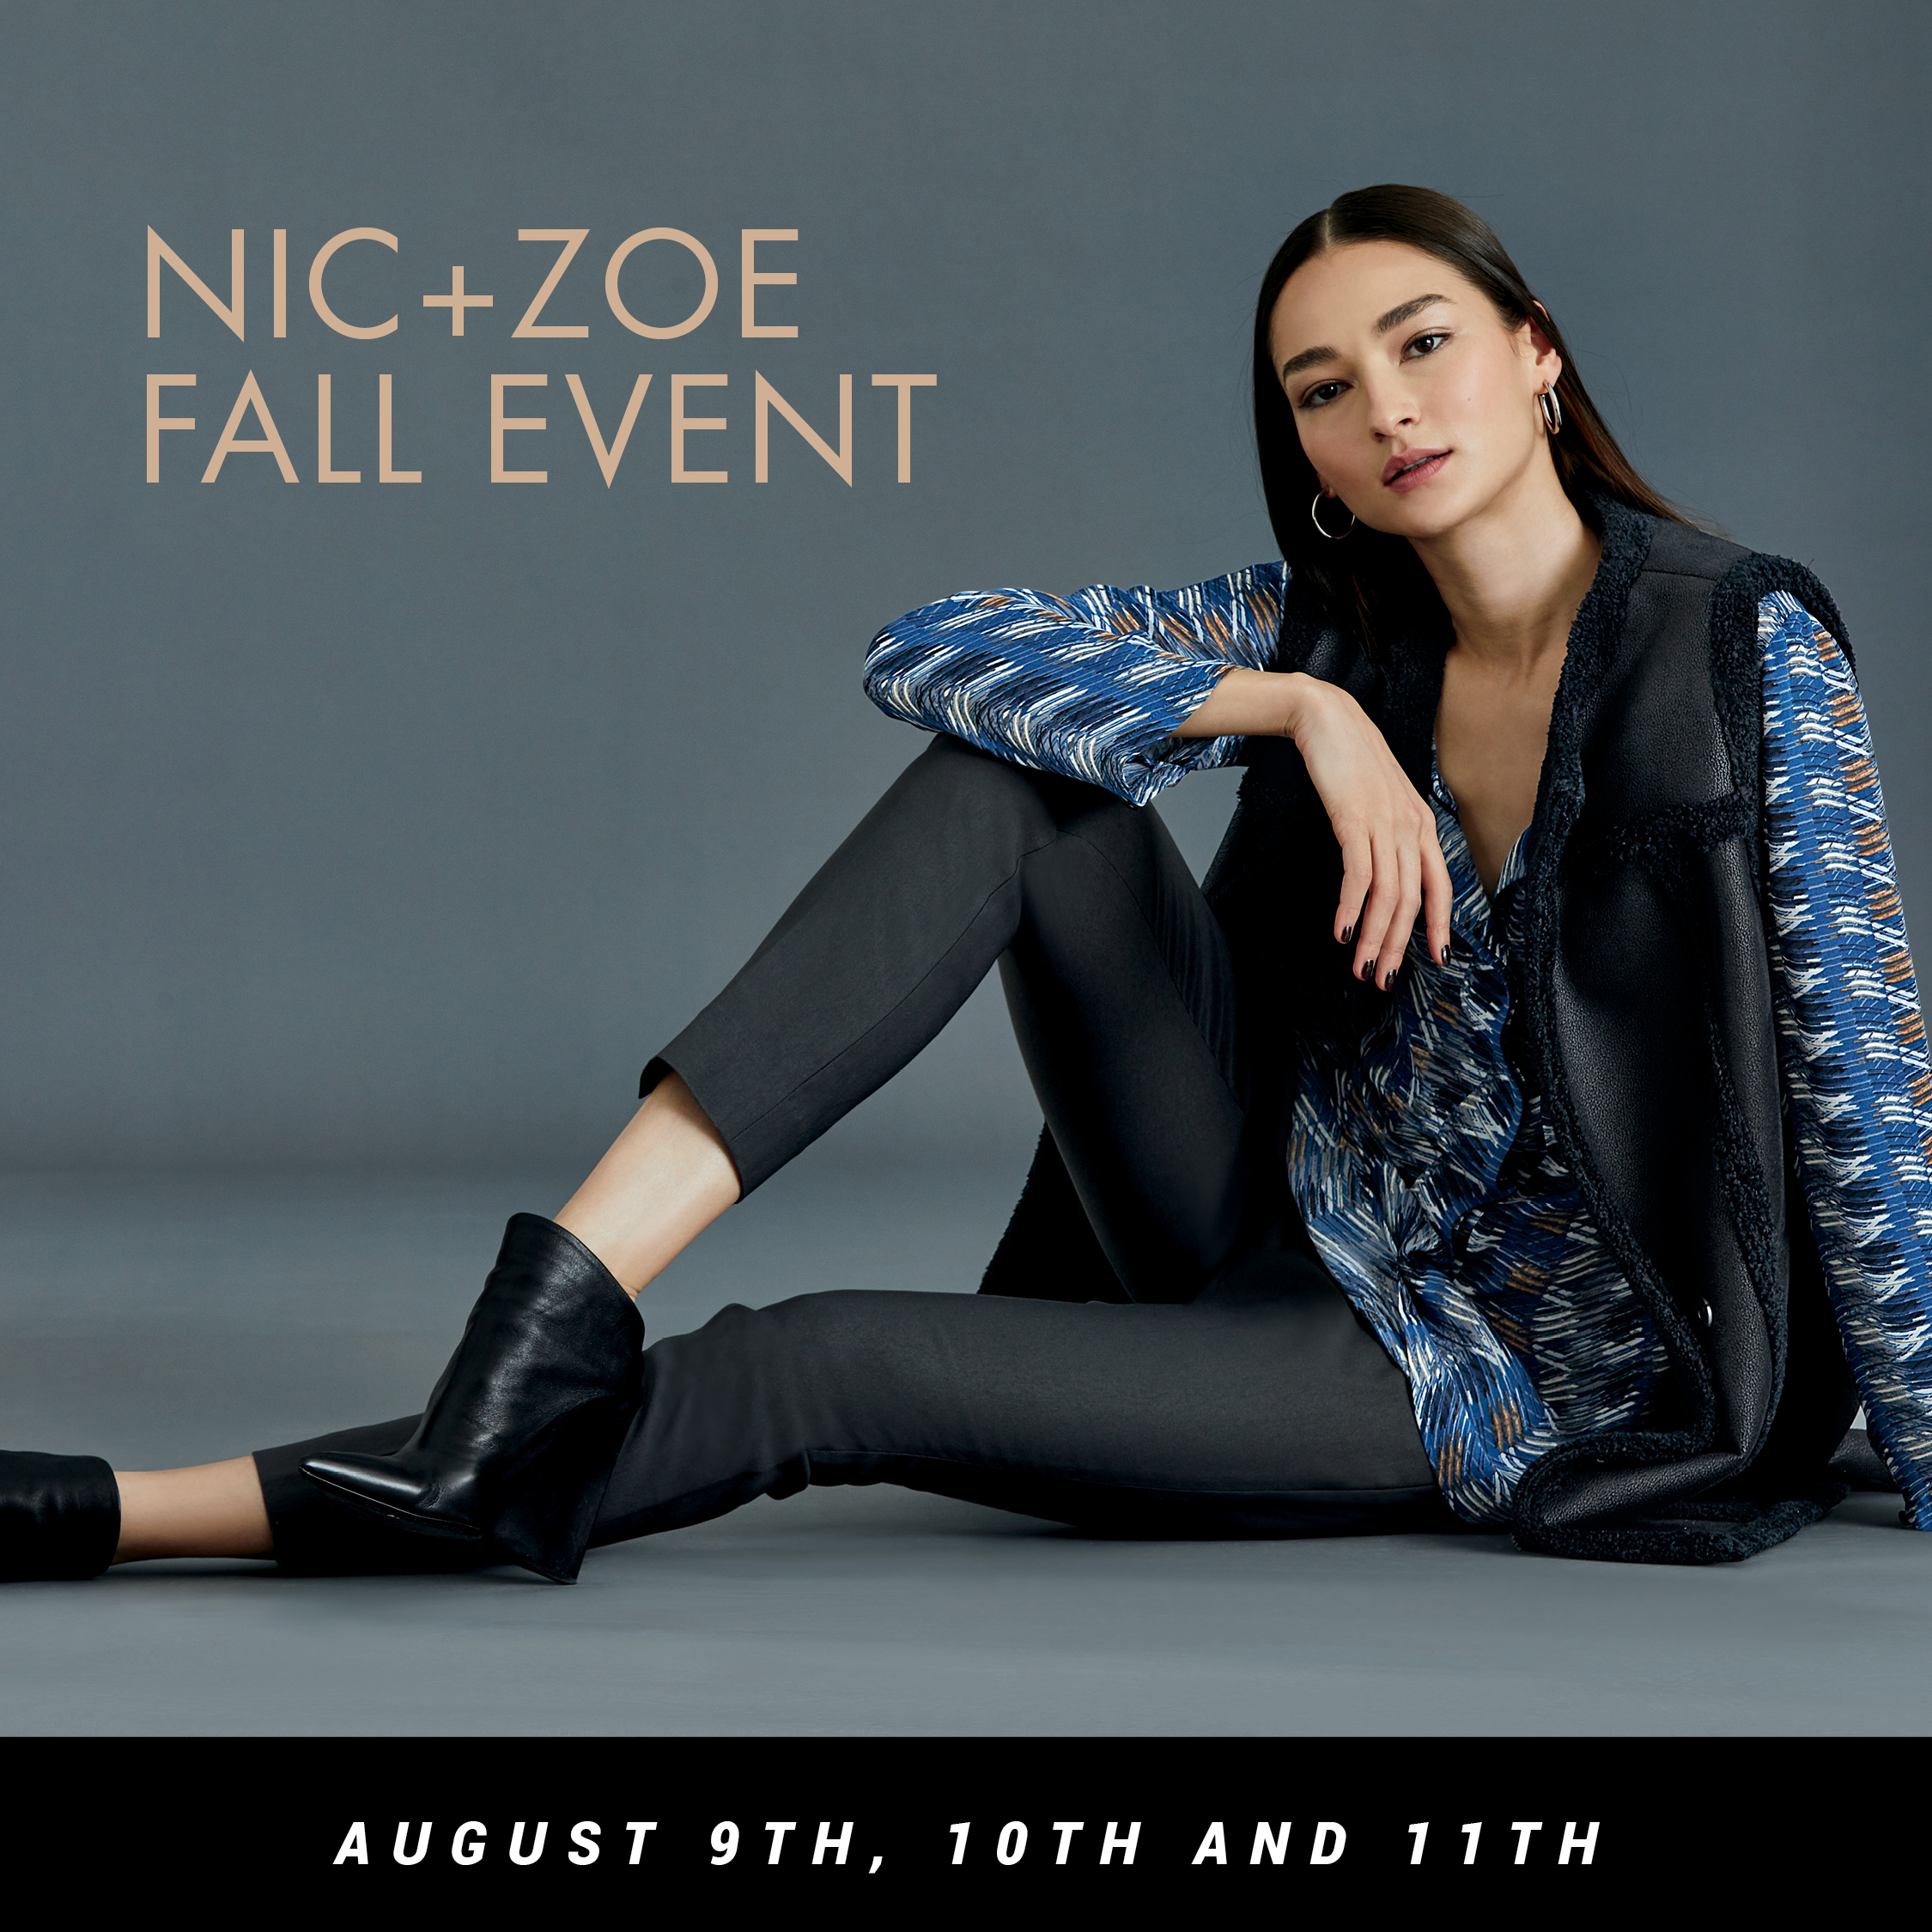 Nic+Zoe Fall Event August 9th, 10th and 11th